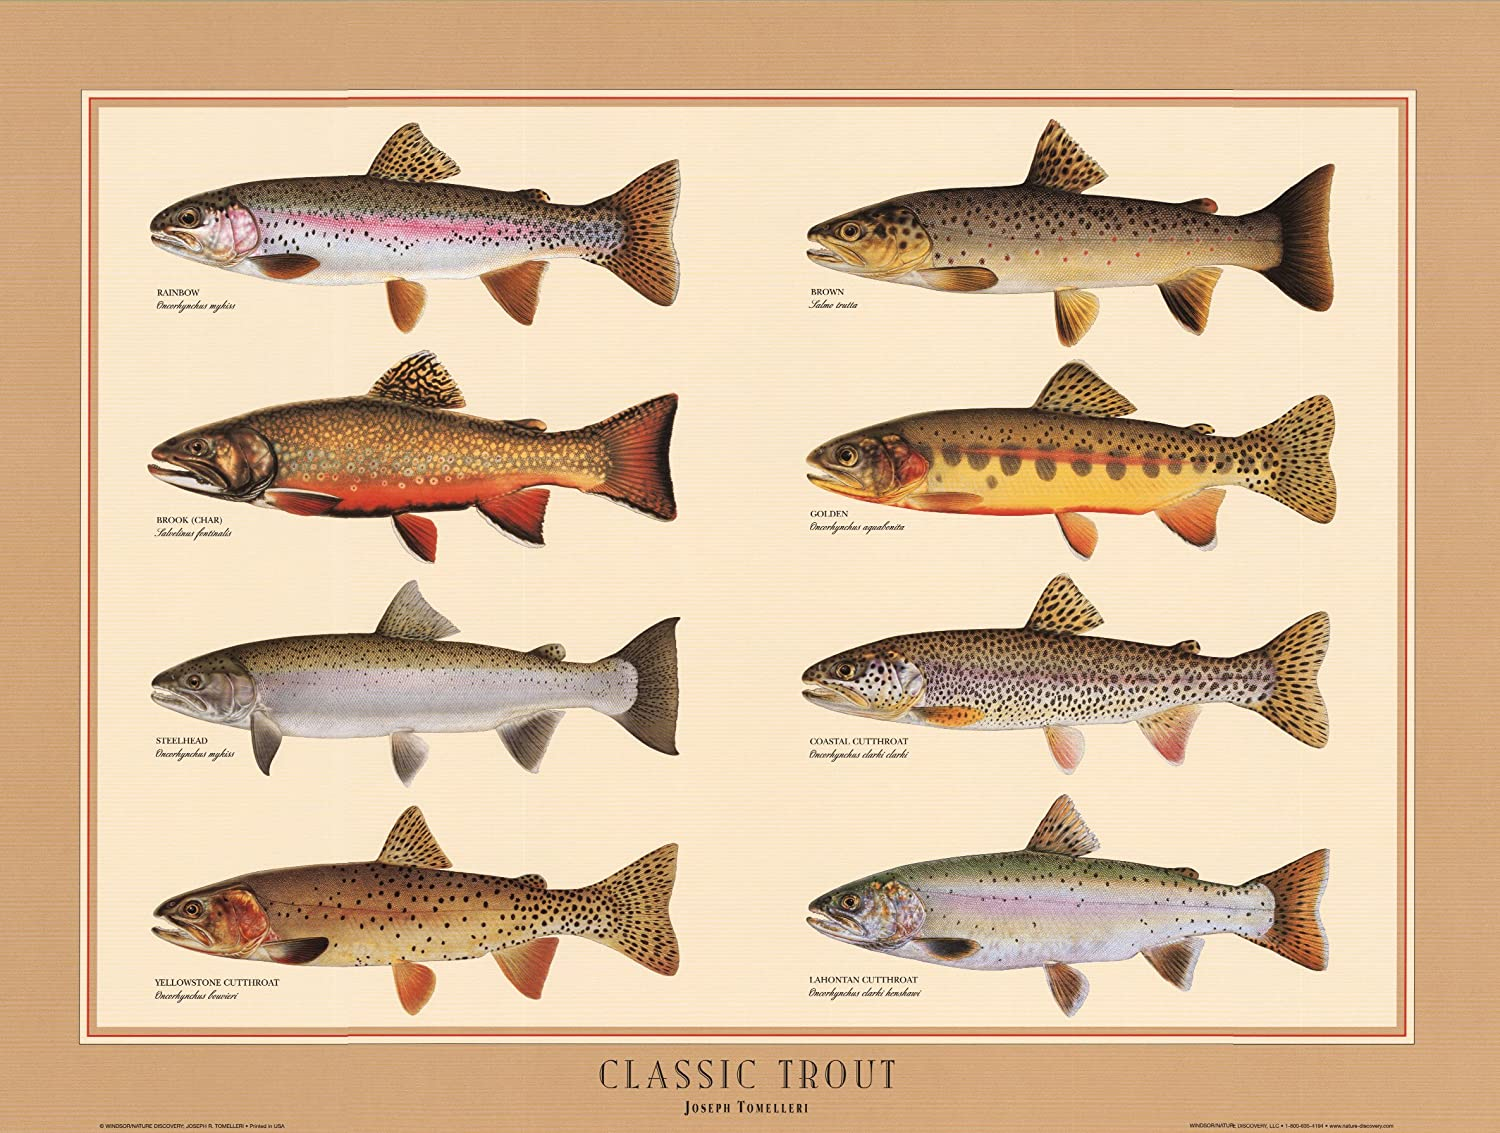 sports shoes 2a119 38efc Amazon.com  Classic Trout Fish Poster and Identification Chart  Posters    Prints